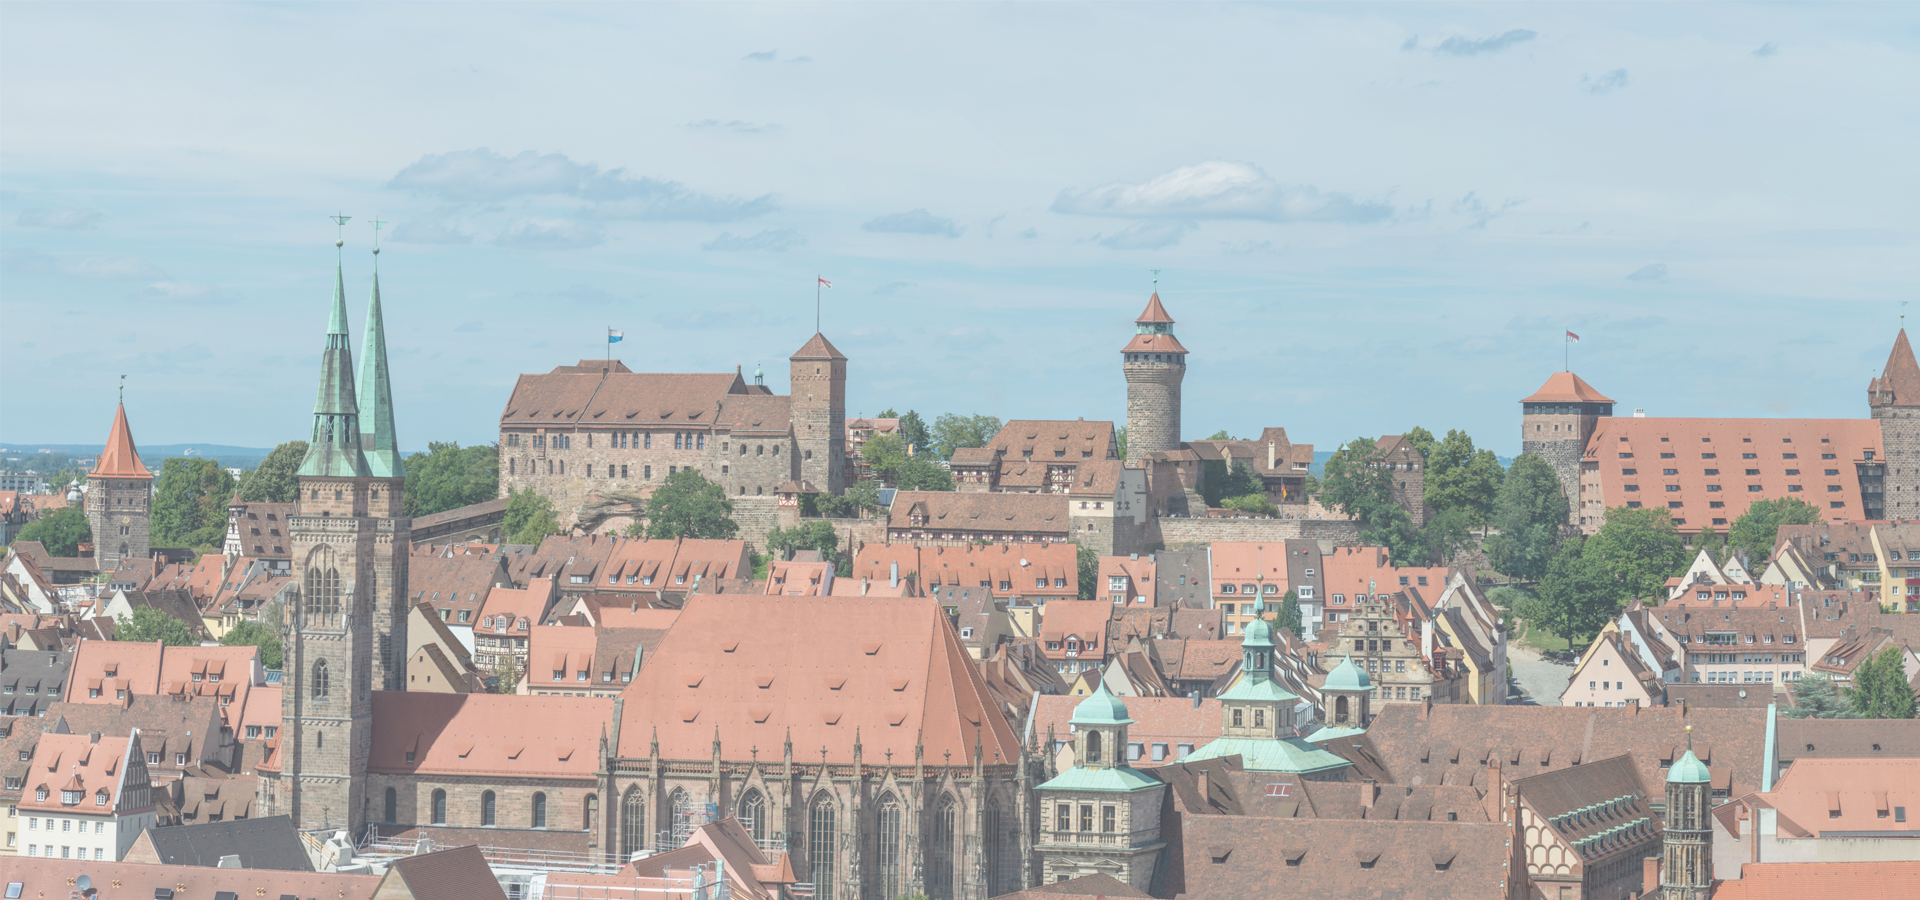 Peer-to-peer advisory in Nuremberg, Bavaria, Germany